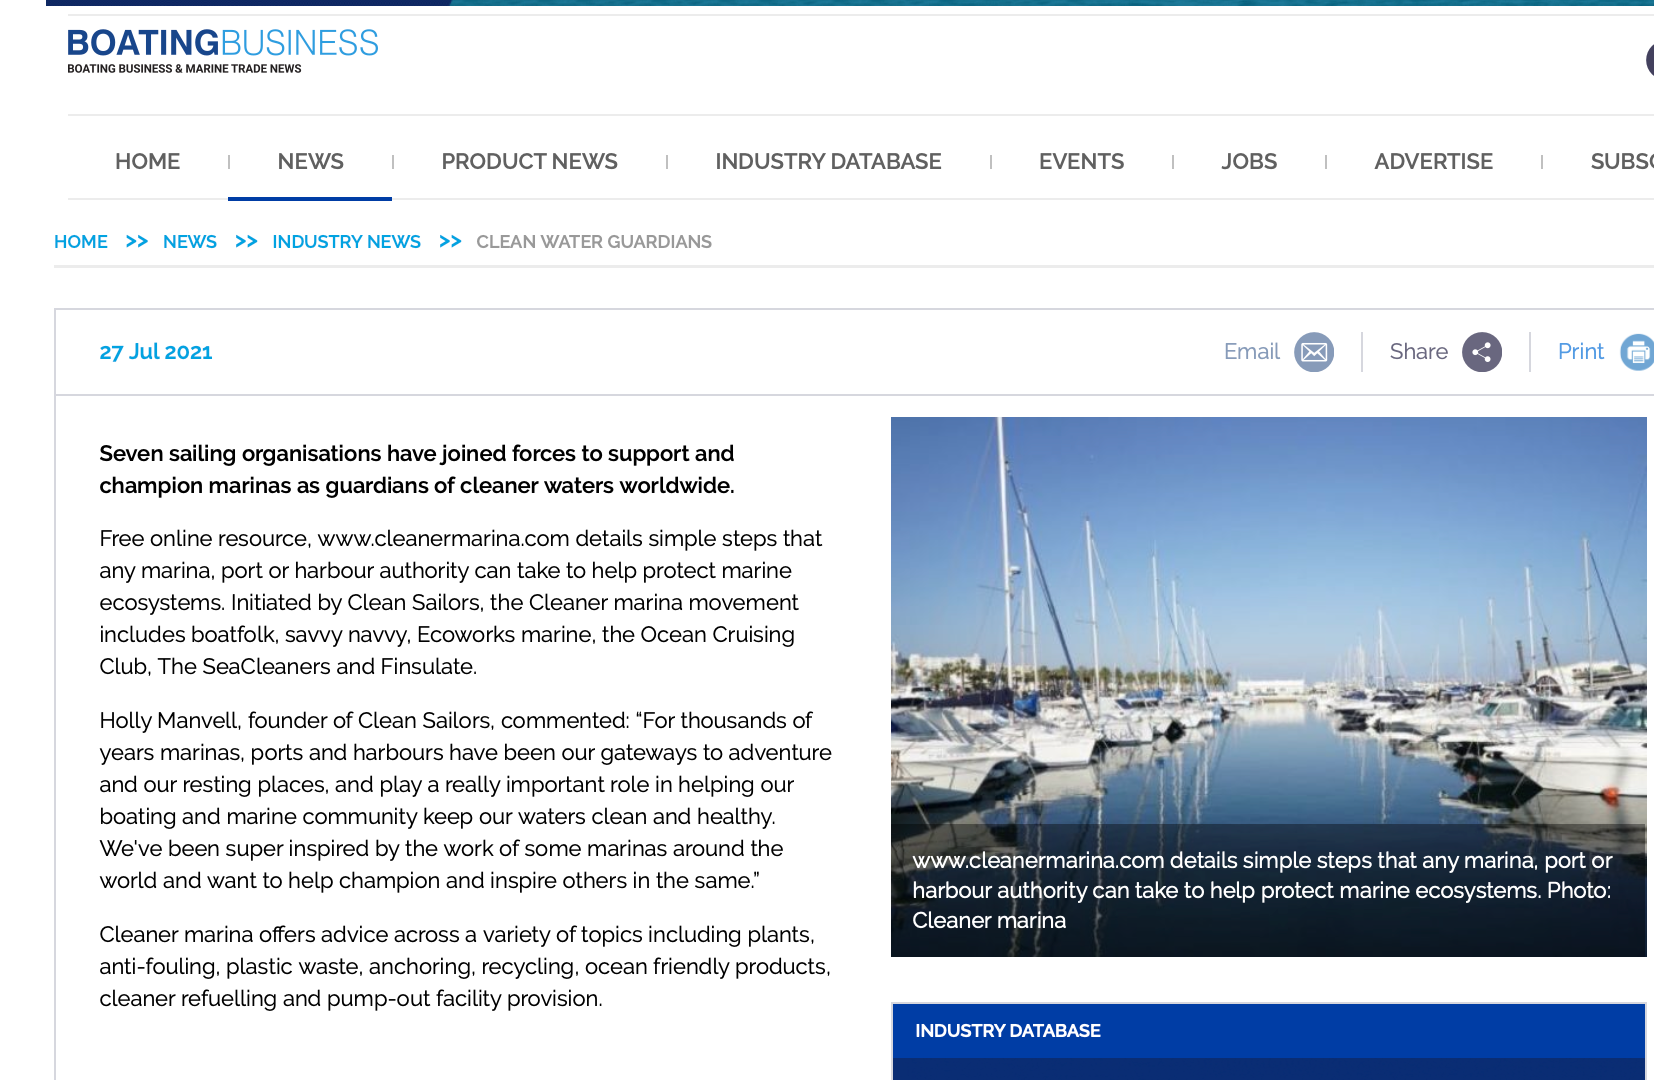 Cleaner marina in Boating business